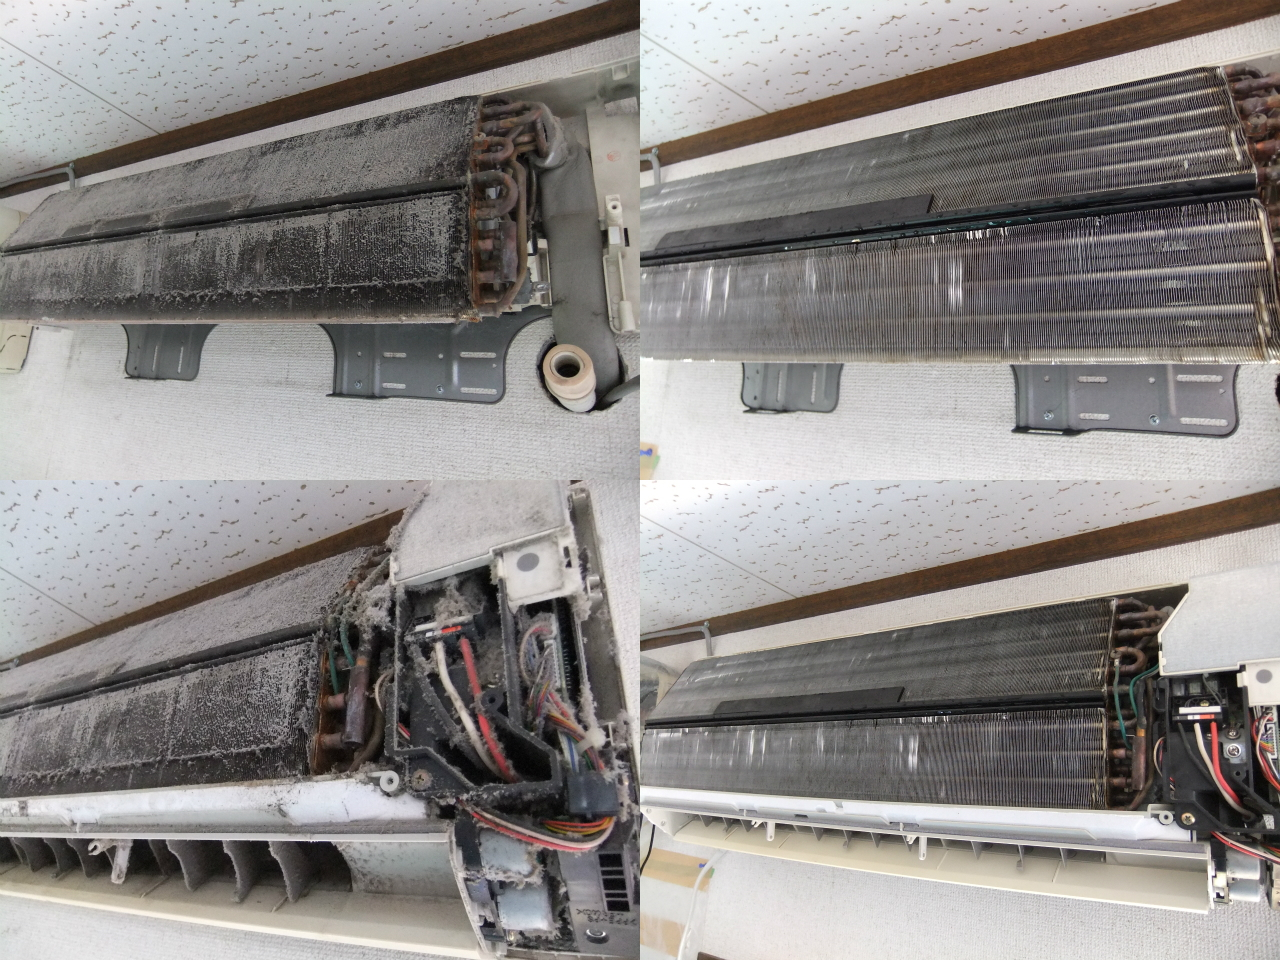 http://ajras.net/images/120208-aircon2.jpg